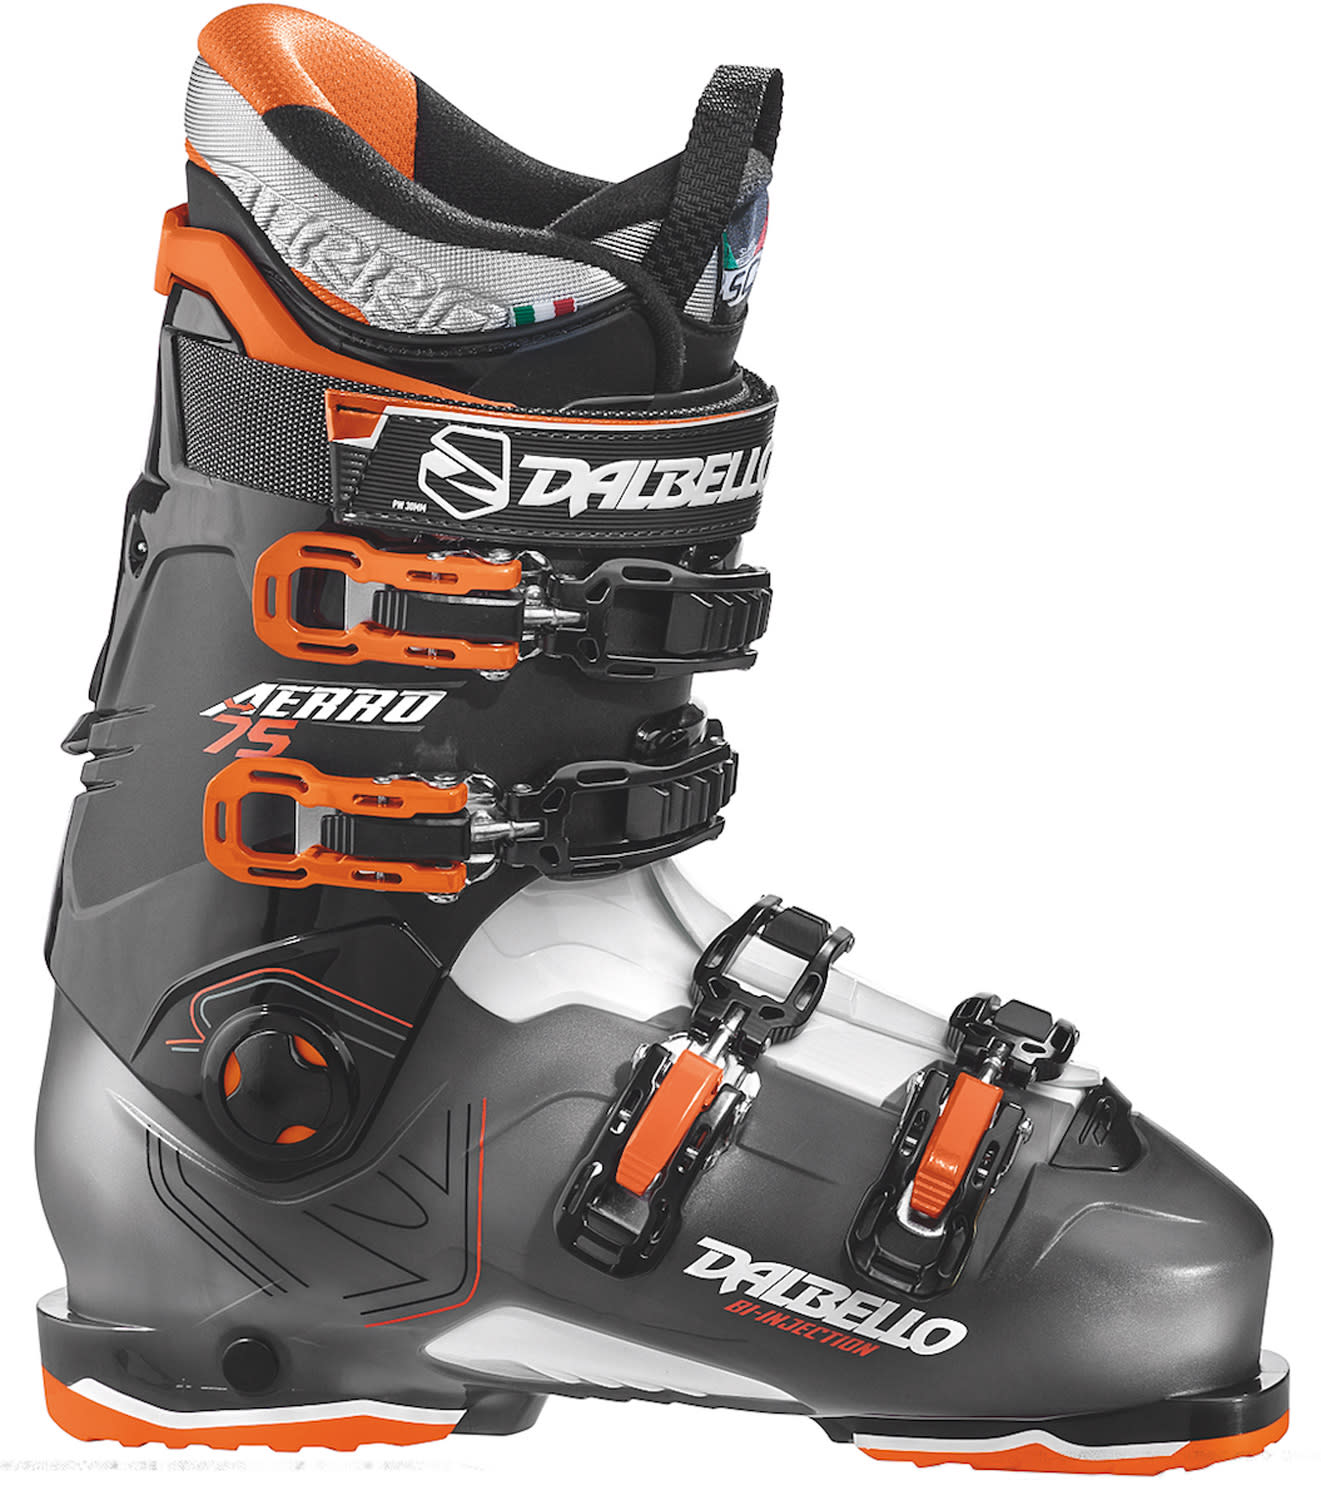 On Sale Dalbello Aerro 75 Ski Boots Up To 45 Off